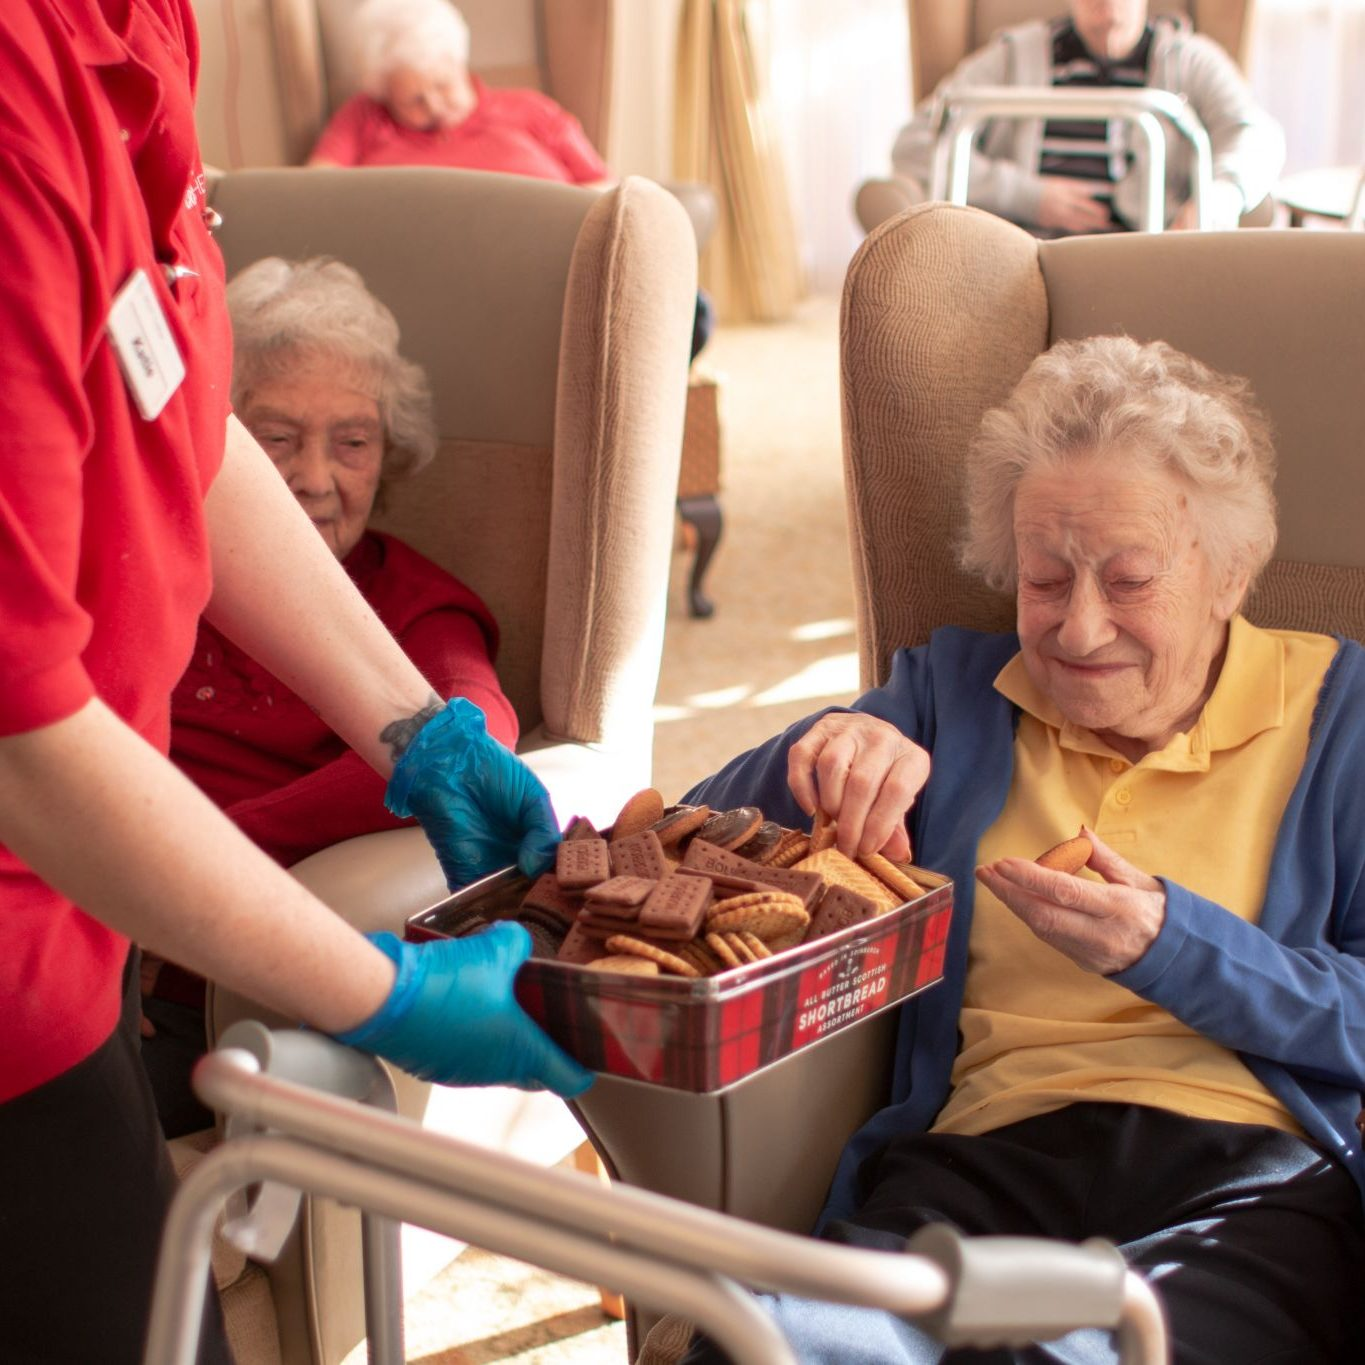 craig healthcare residents lifestyle photography hannah layford biscuit tea